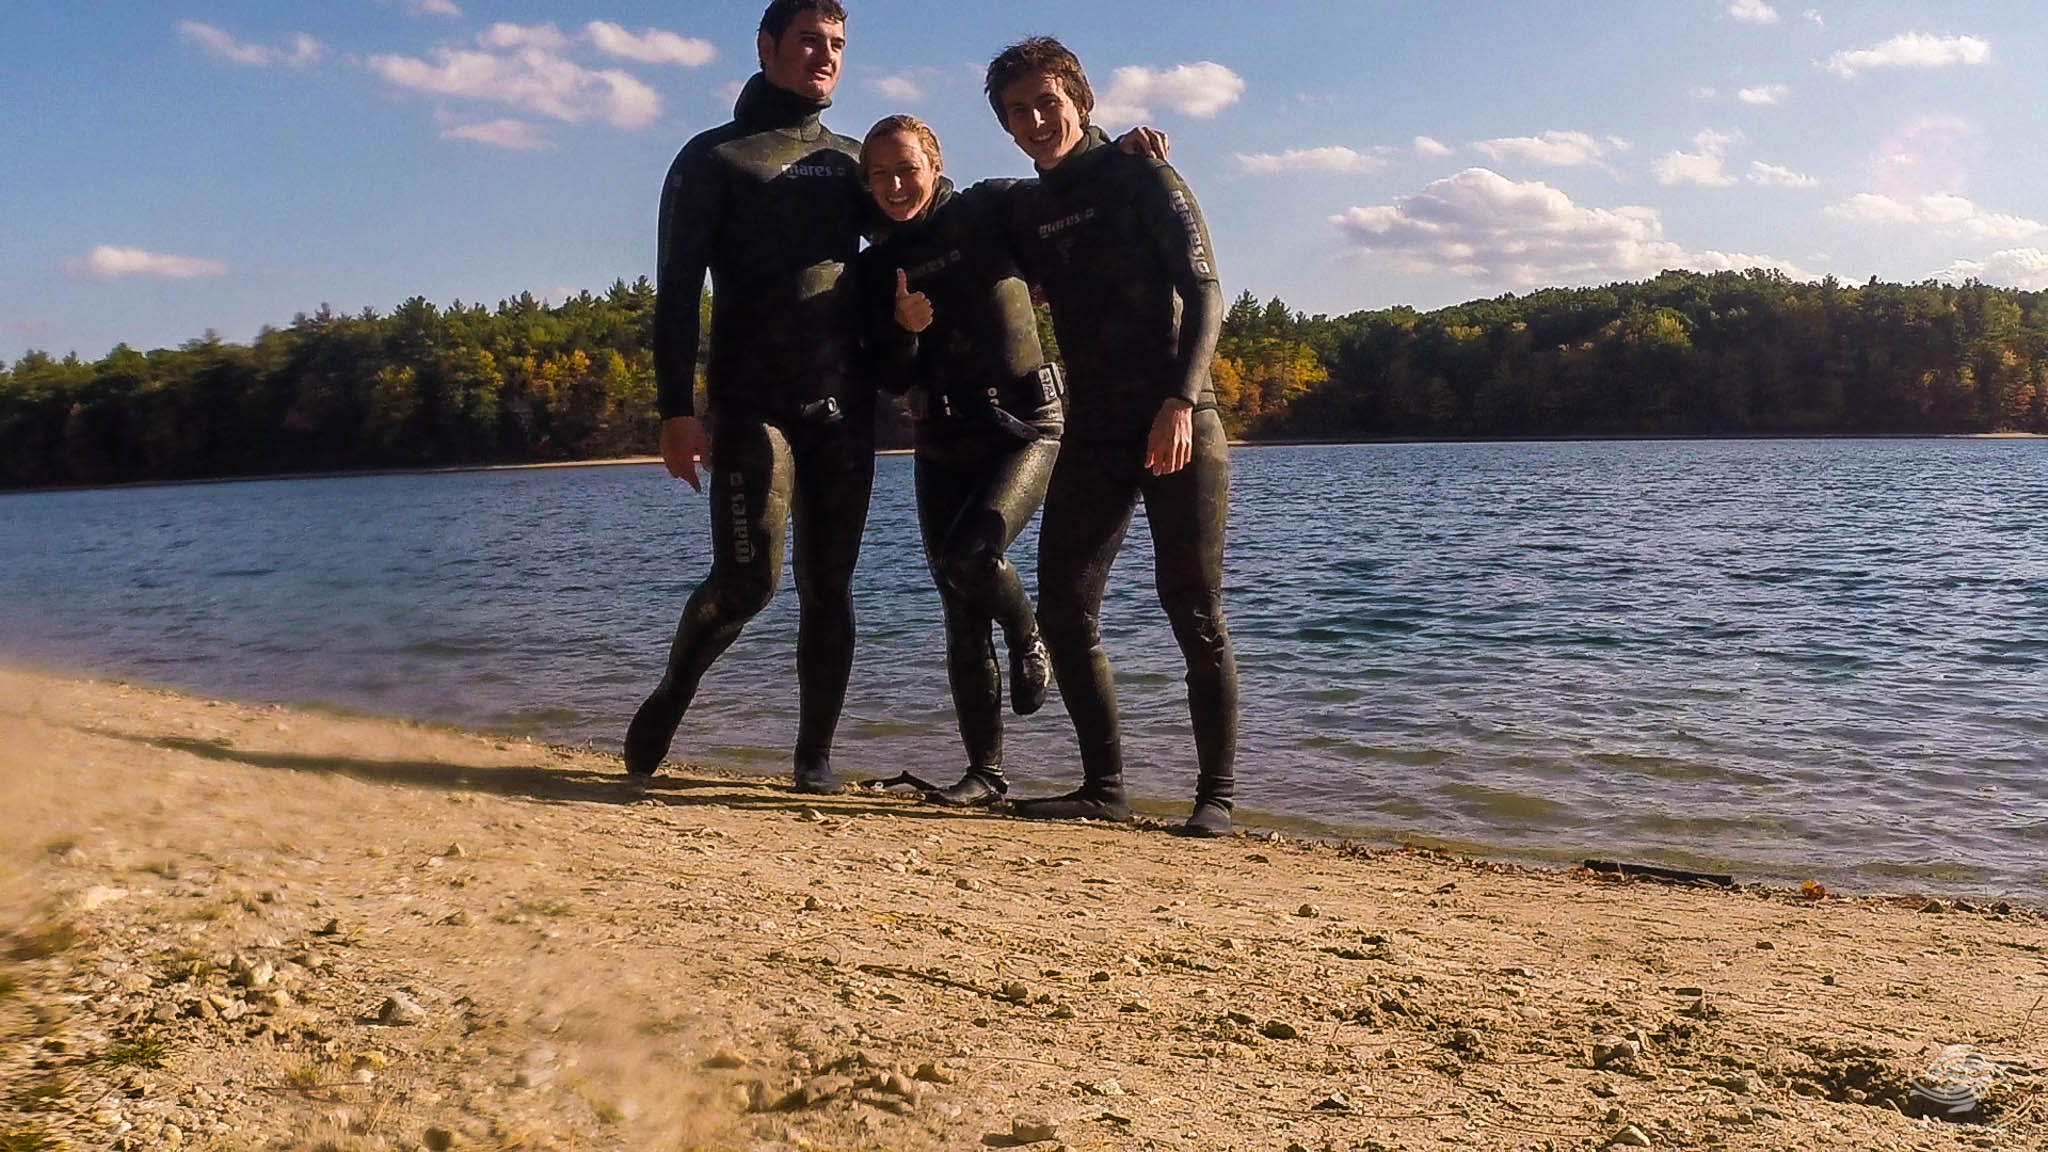 Free-Diving Walden Pond